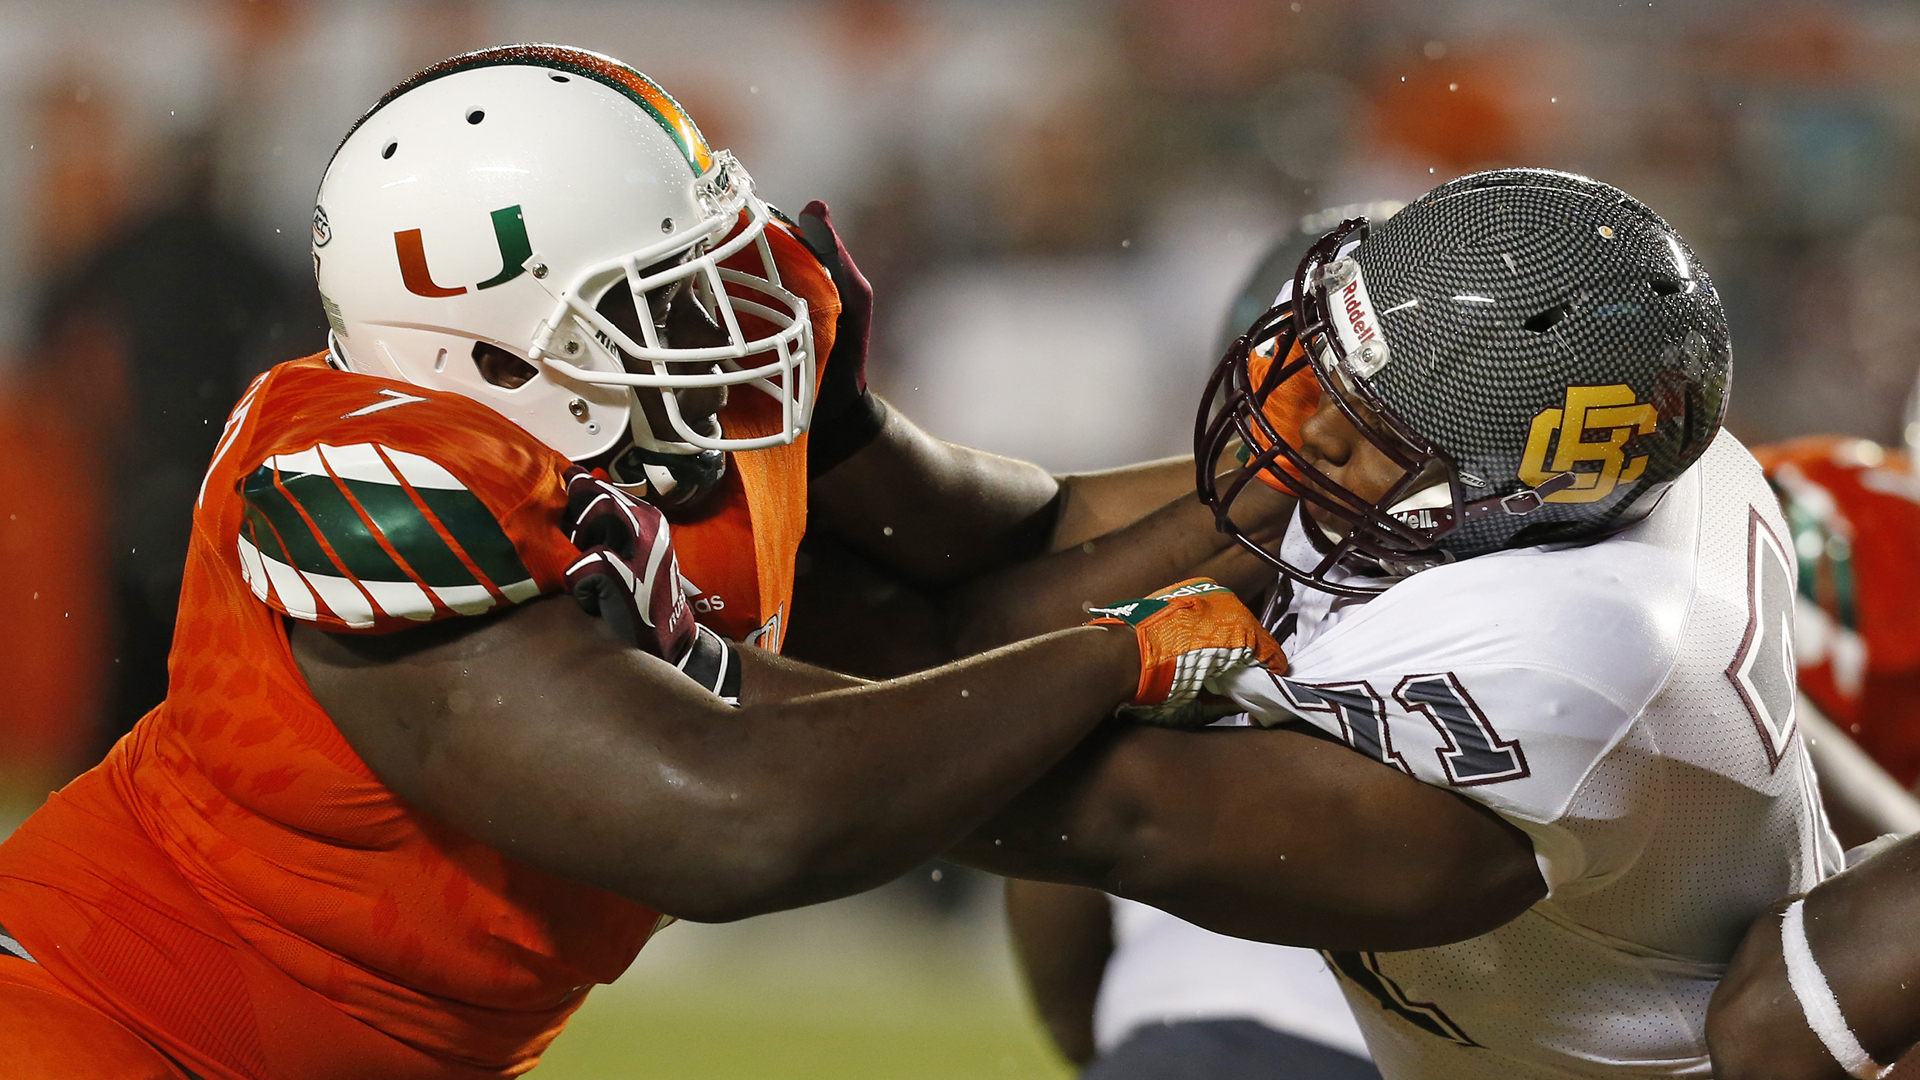 Kendrick Norton of the Miami Hurricanes, left, battles Phillip Norman of the Bethune-Cookman Wildcats during third quarter action on September 5, 2015 at Sun Life Stadium in Miami Gardens, Florida. (Credit: Joel Auerbach/Getty Images)